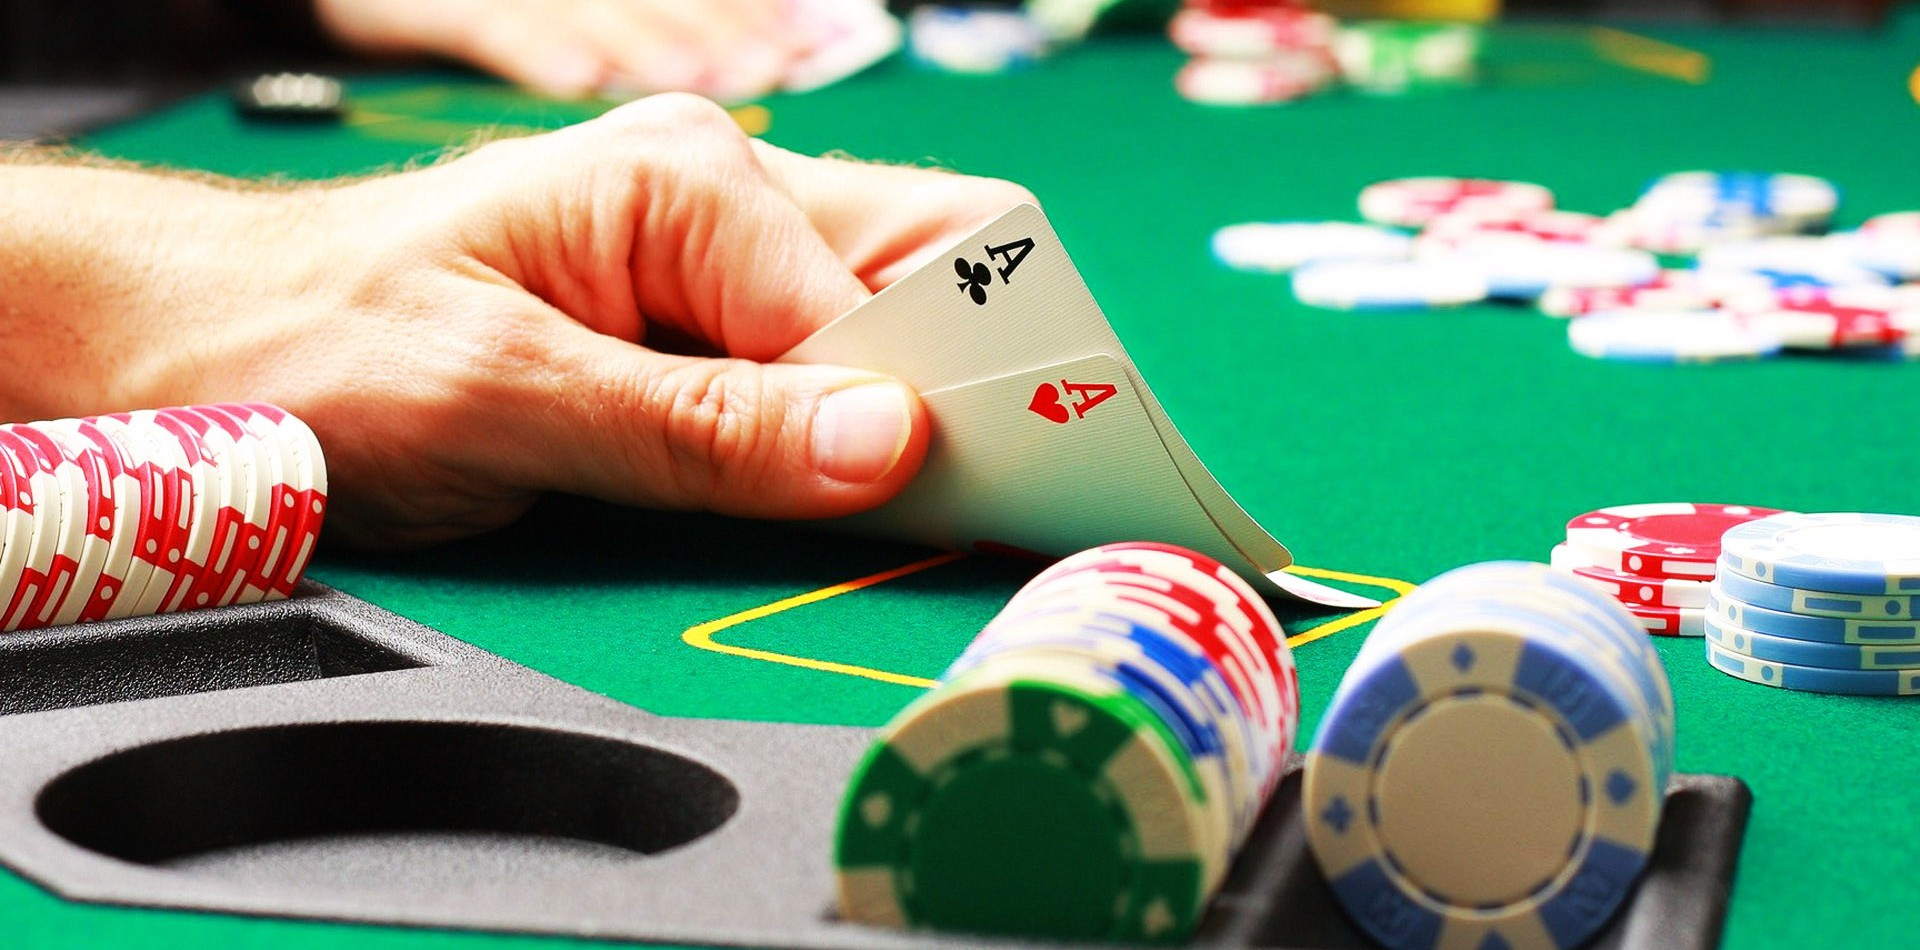 Poker Tournaments in Ireland and the UK This Autumn